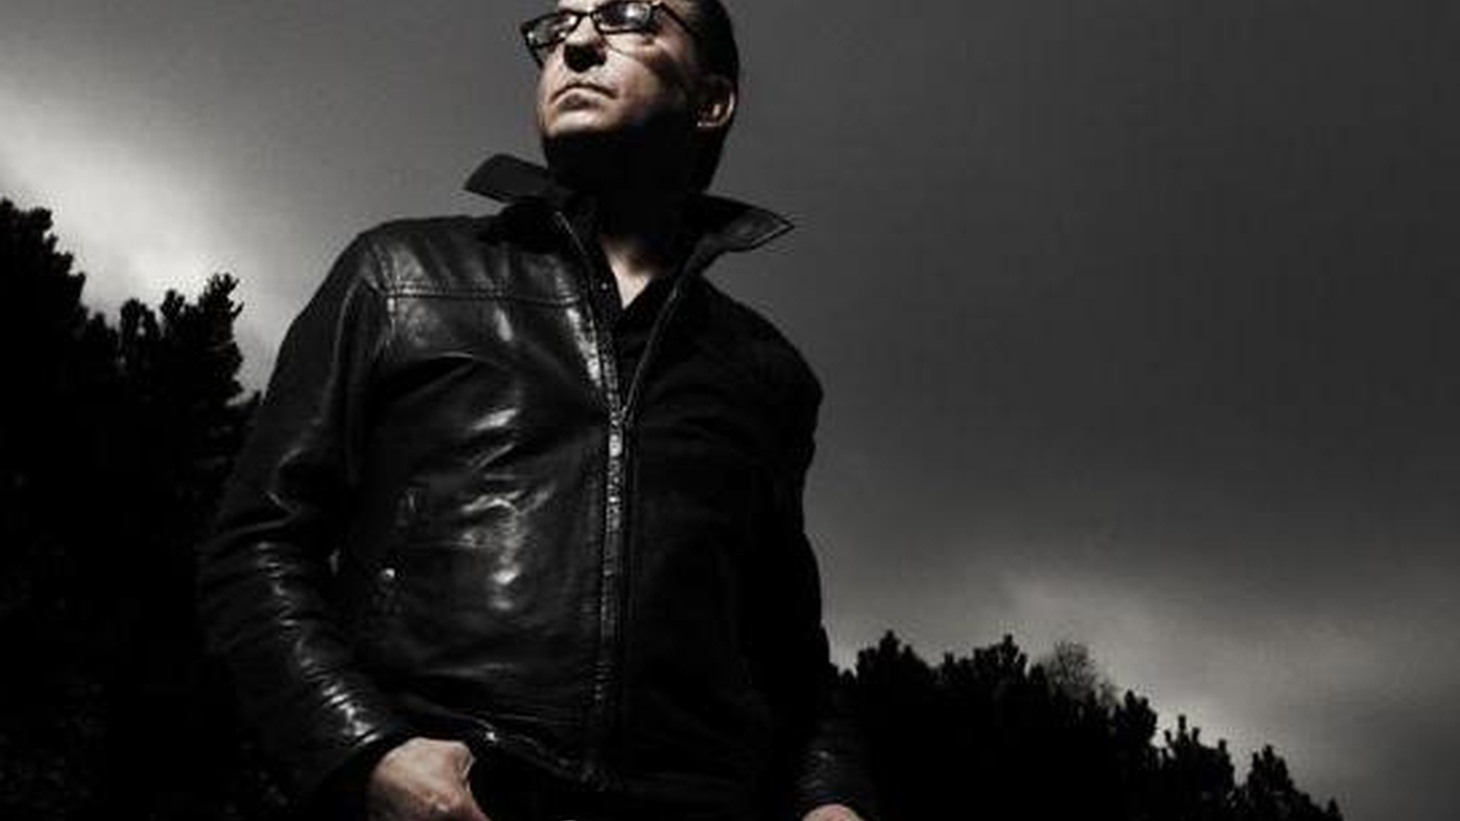 Armed with an electric guitar, Richard Hawley sets his sights on a hypnotic and psychedelic sound for his seventh album as his distinctive vocals sit front and center.